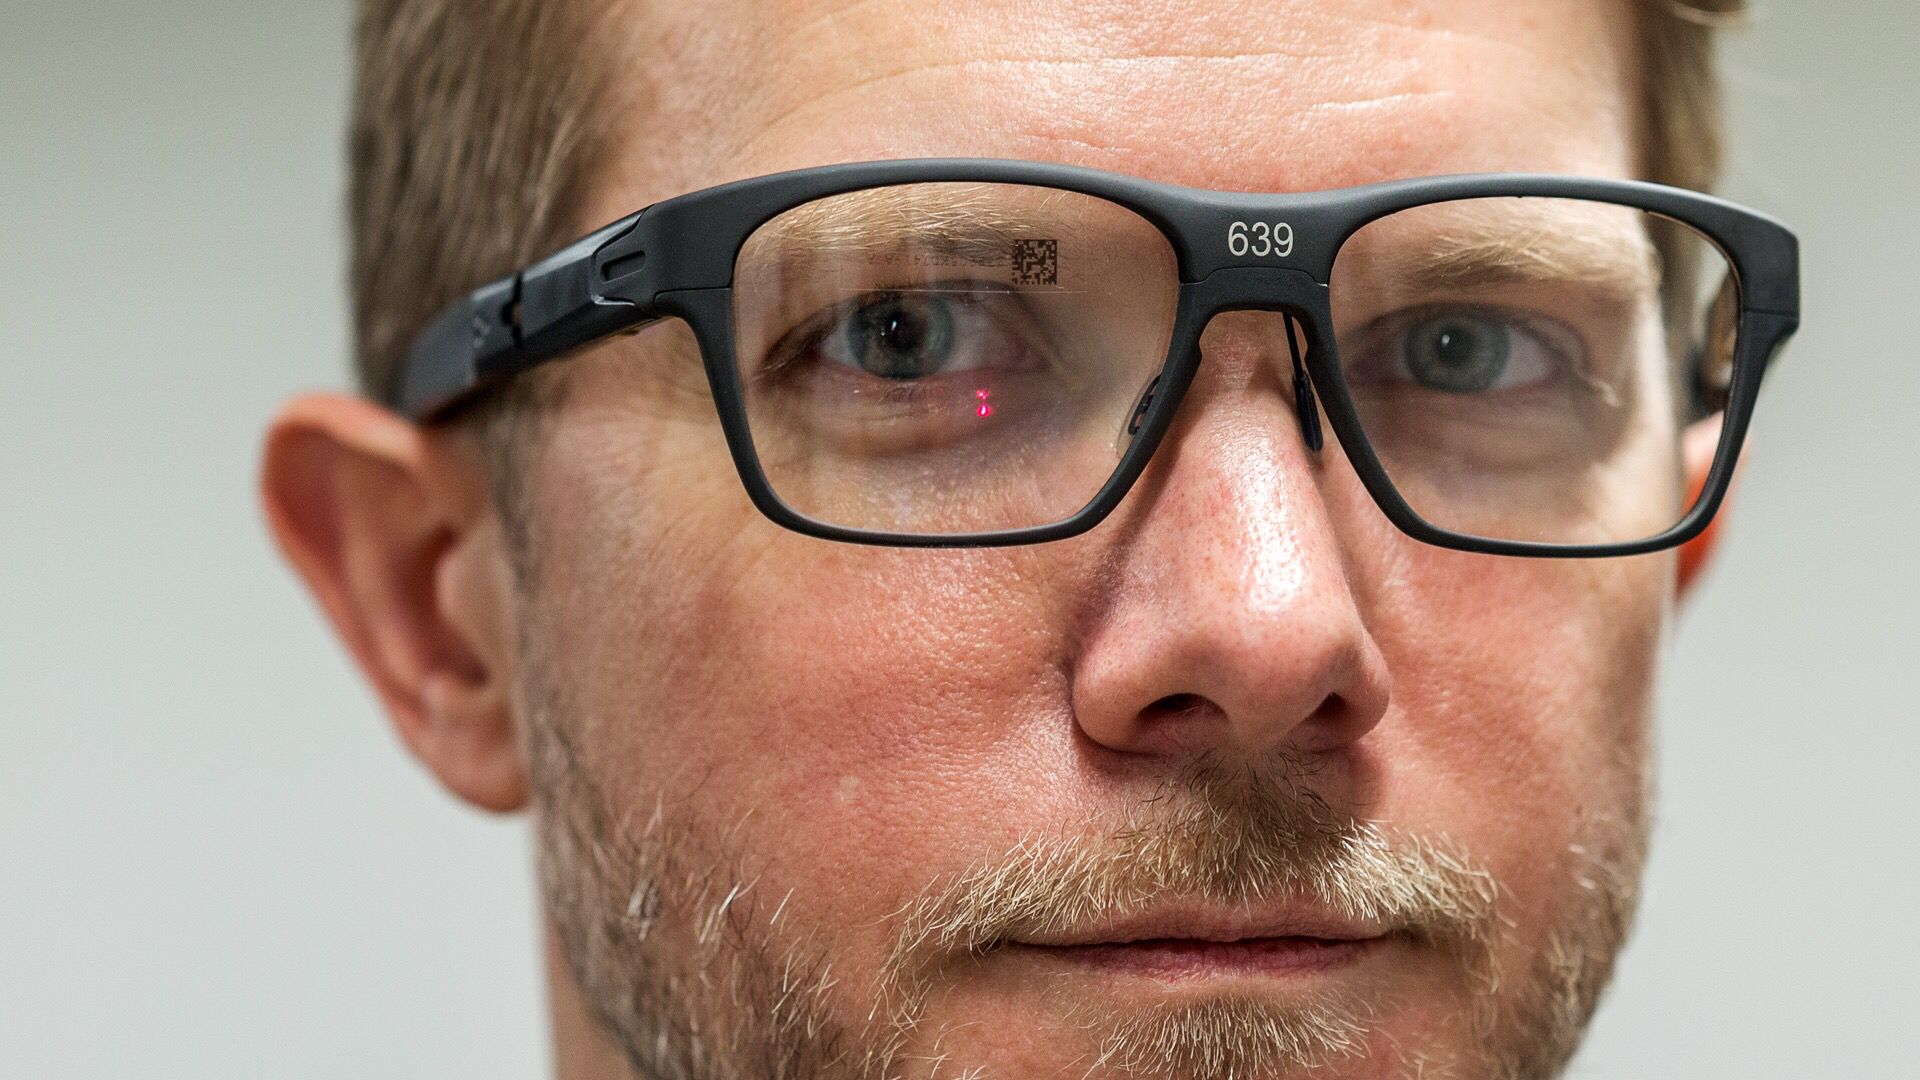 90e59fc43a6 Exclusive  Intel s new Vaunt smart glasses actually look good - The Verge